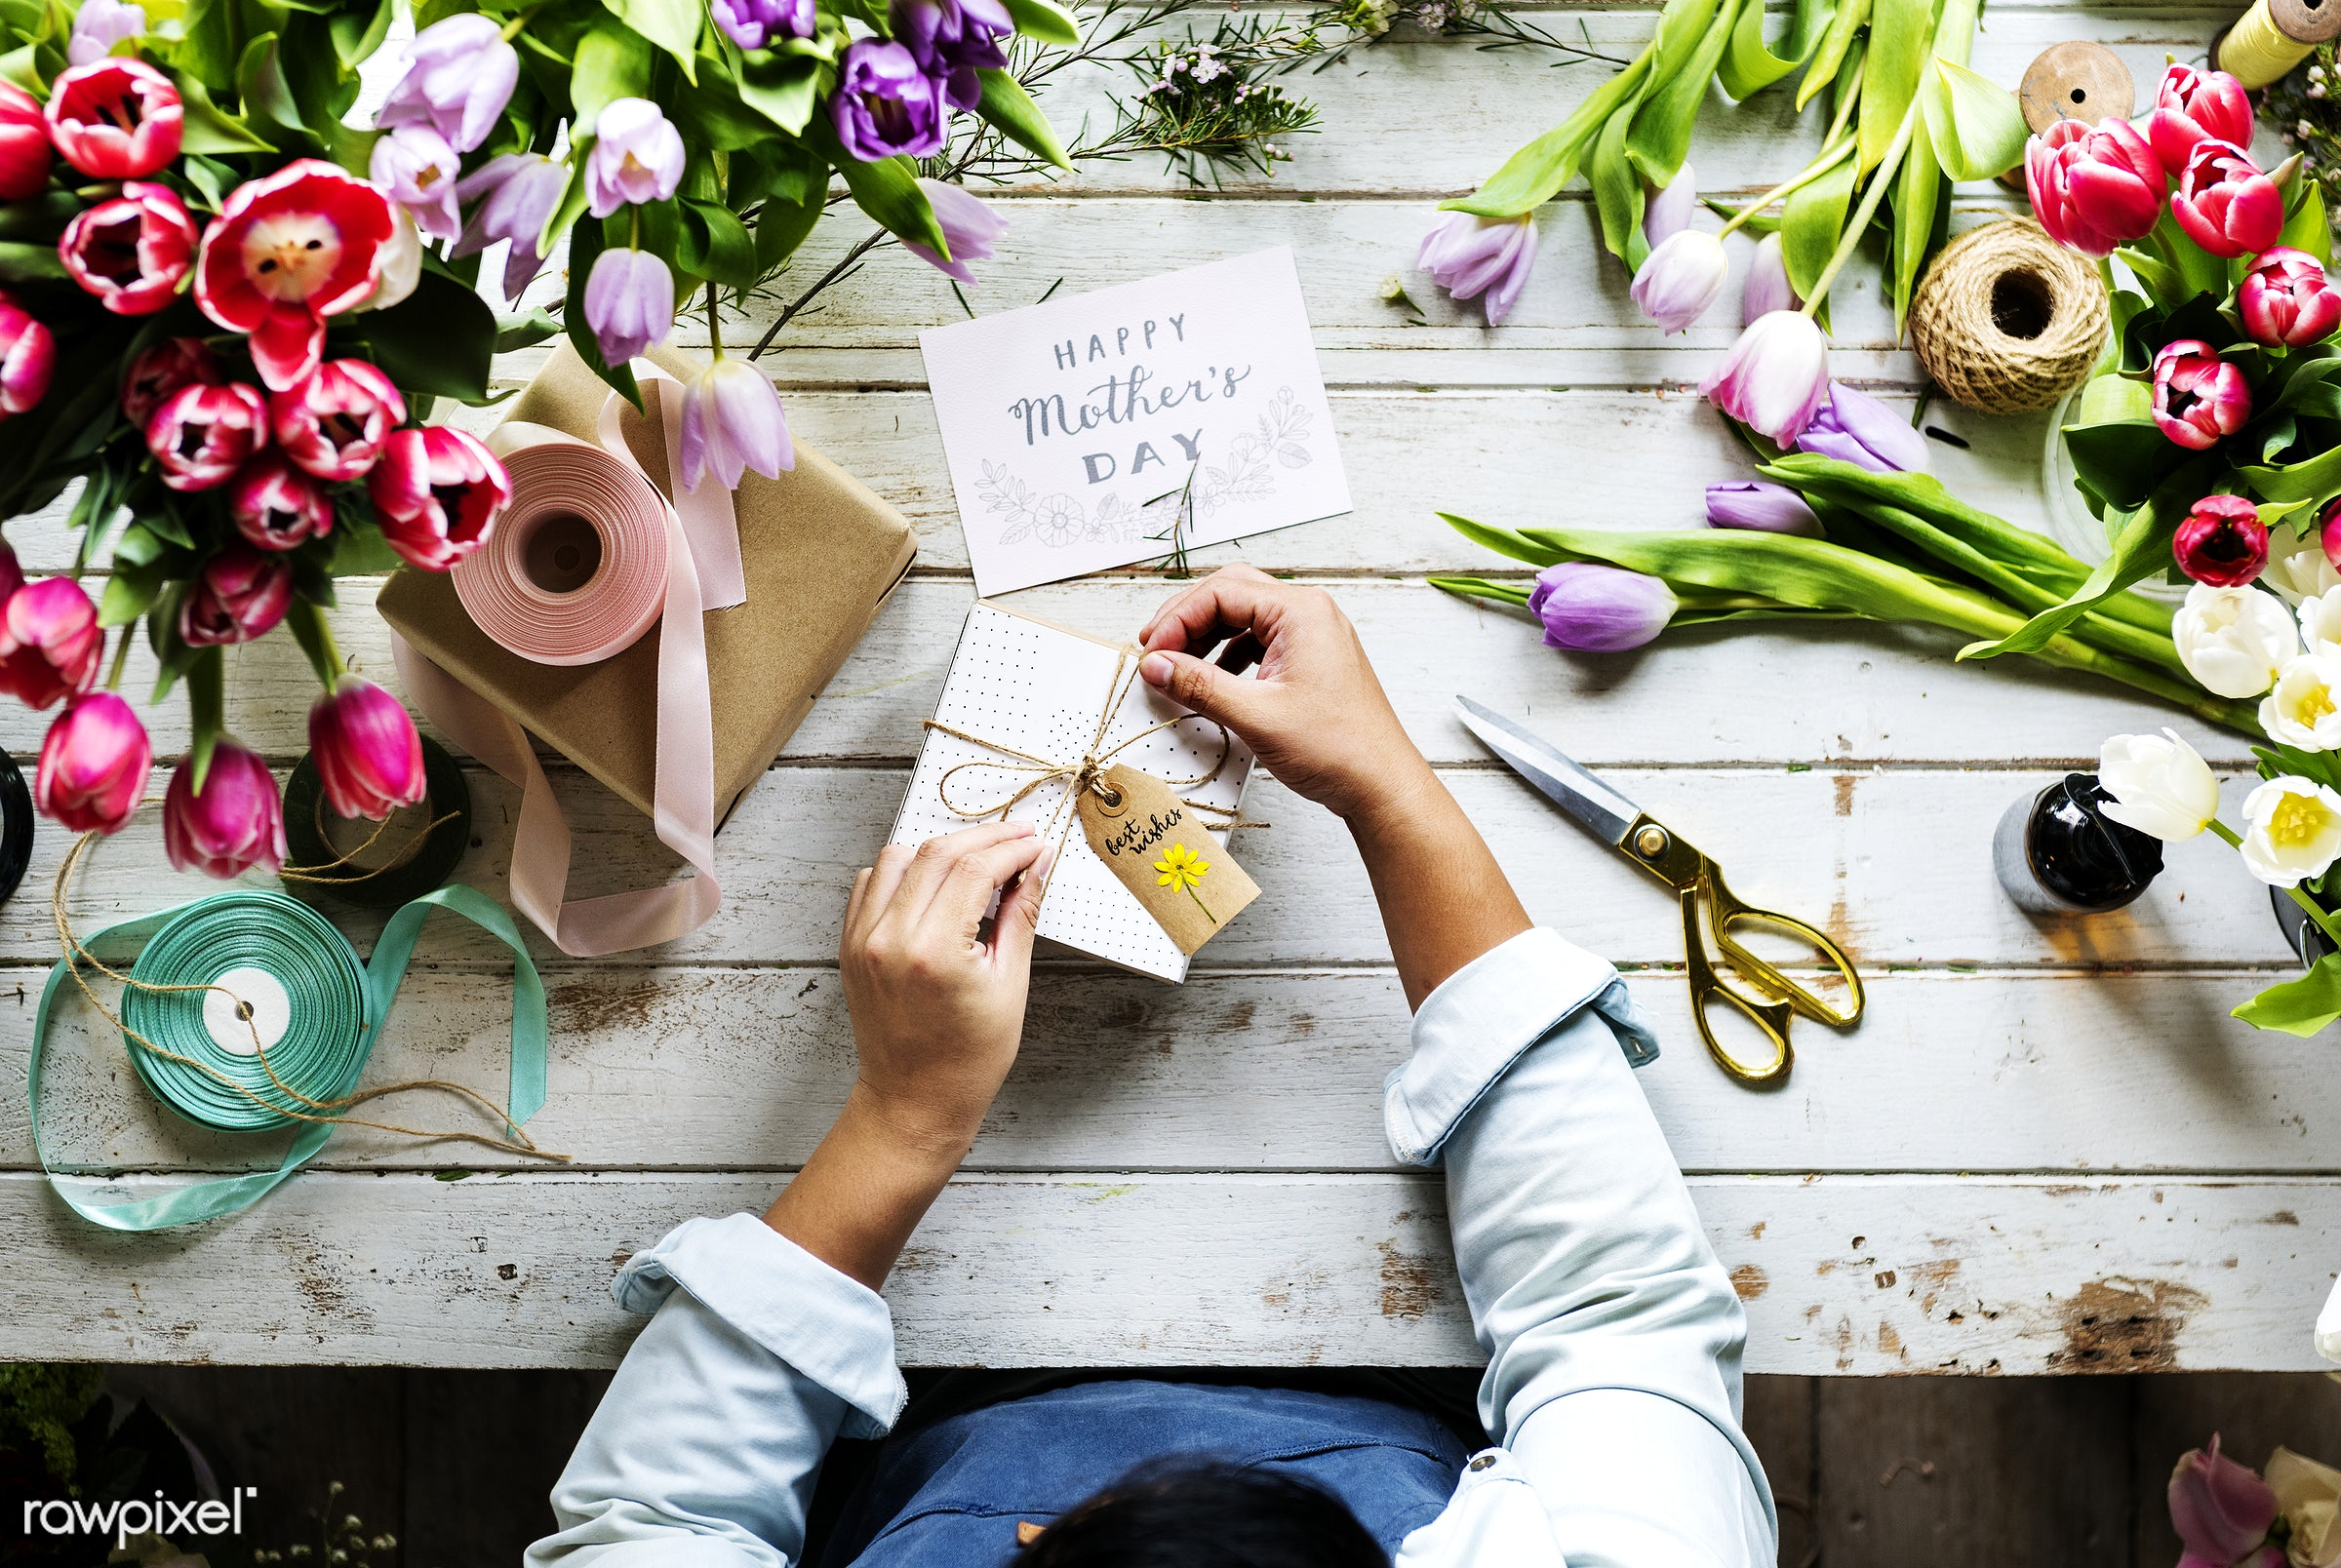 Hands wrapping a present for mother's day - flowers, florist, job, occupation, arrangement, decoration, real, fresh, card,...